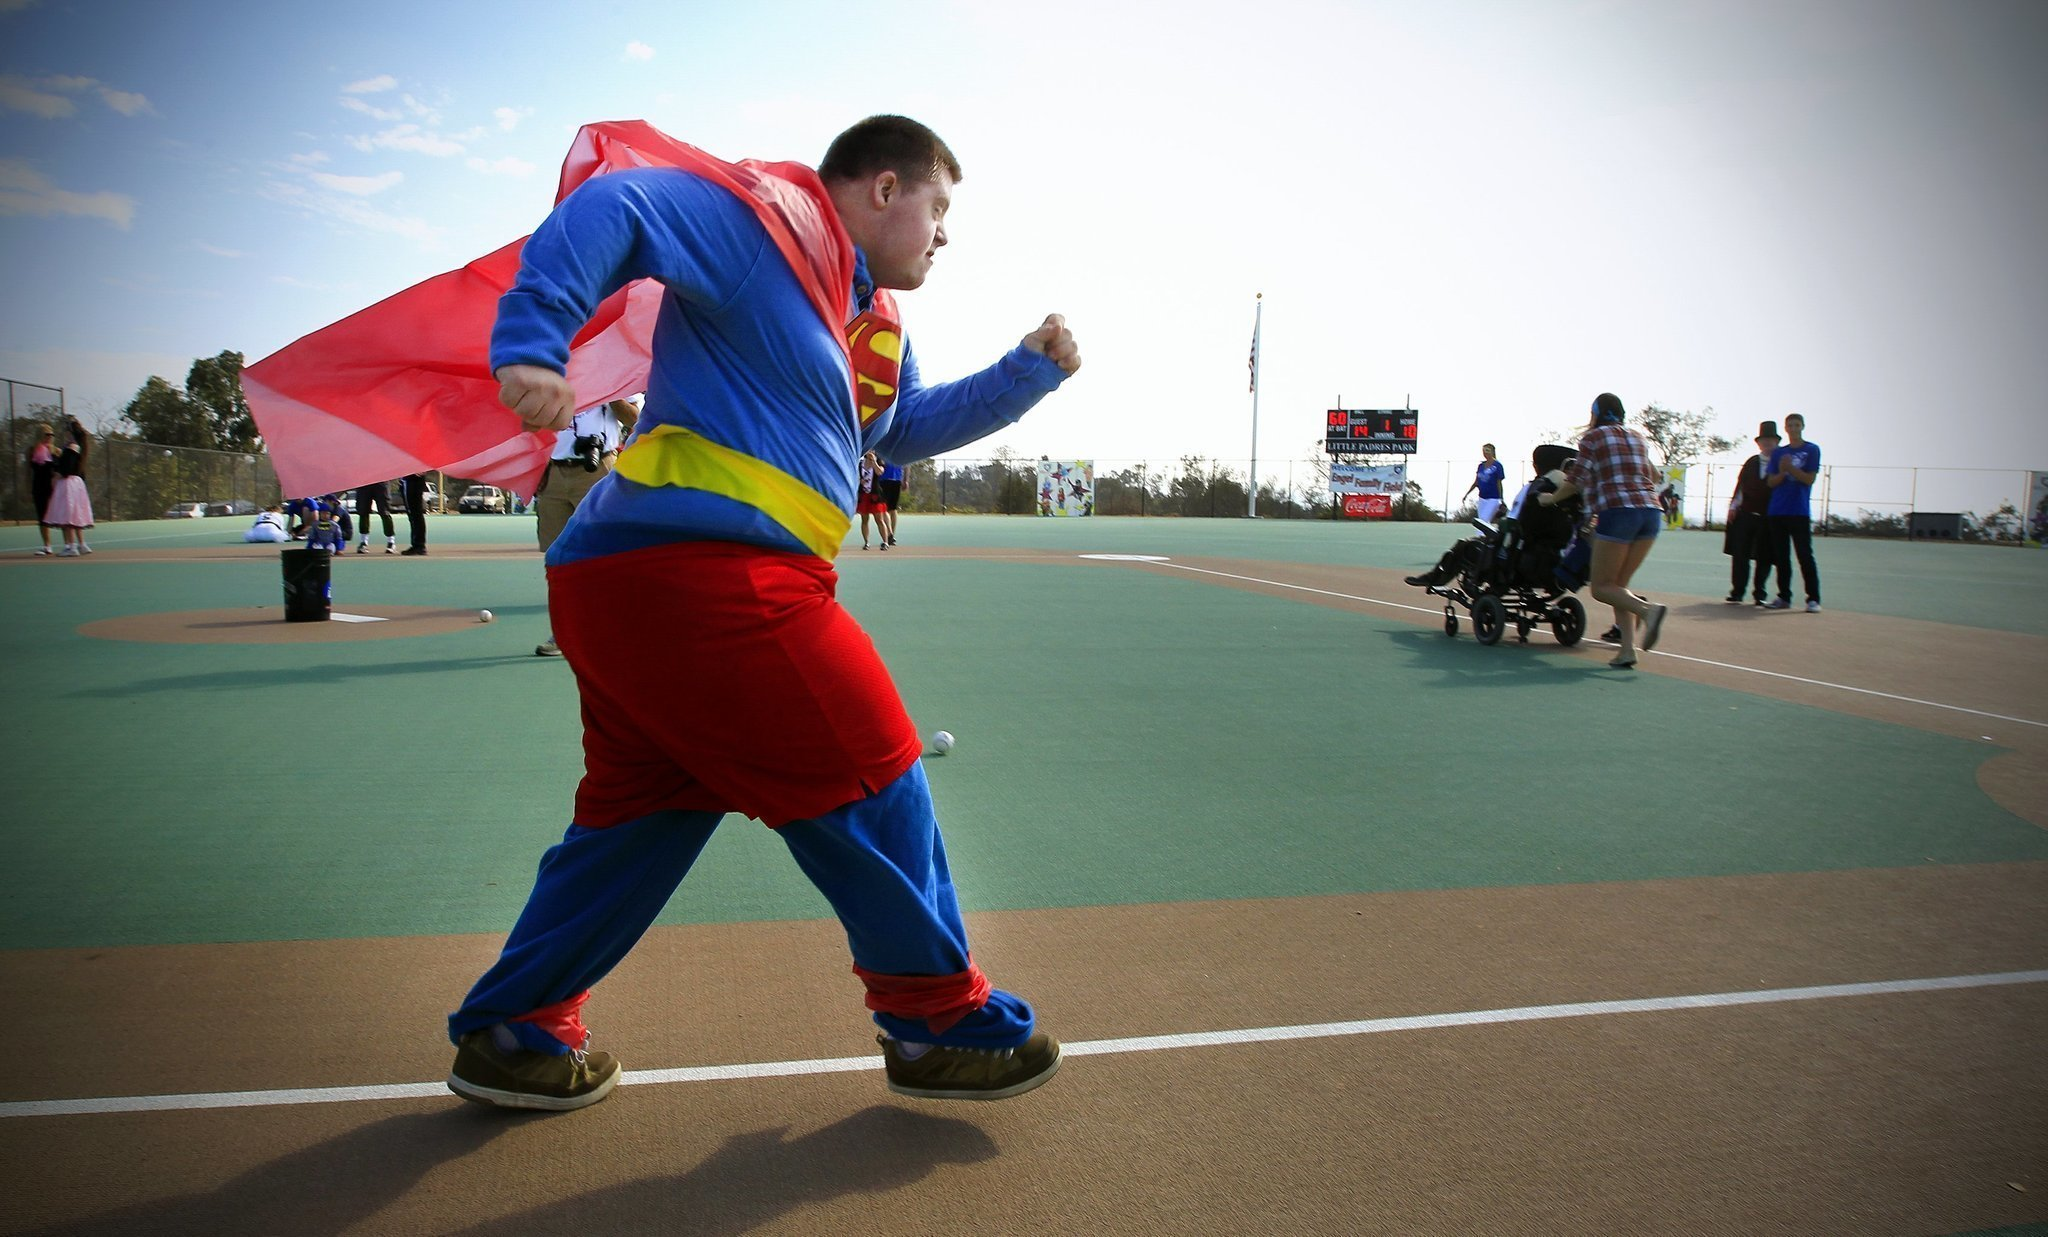 celebrity pitchers play ball with special kids the san diego union tribune - Pitchers For Kids